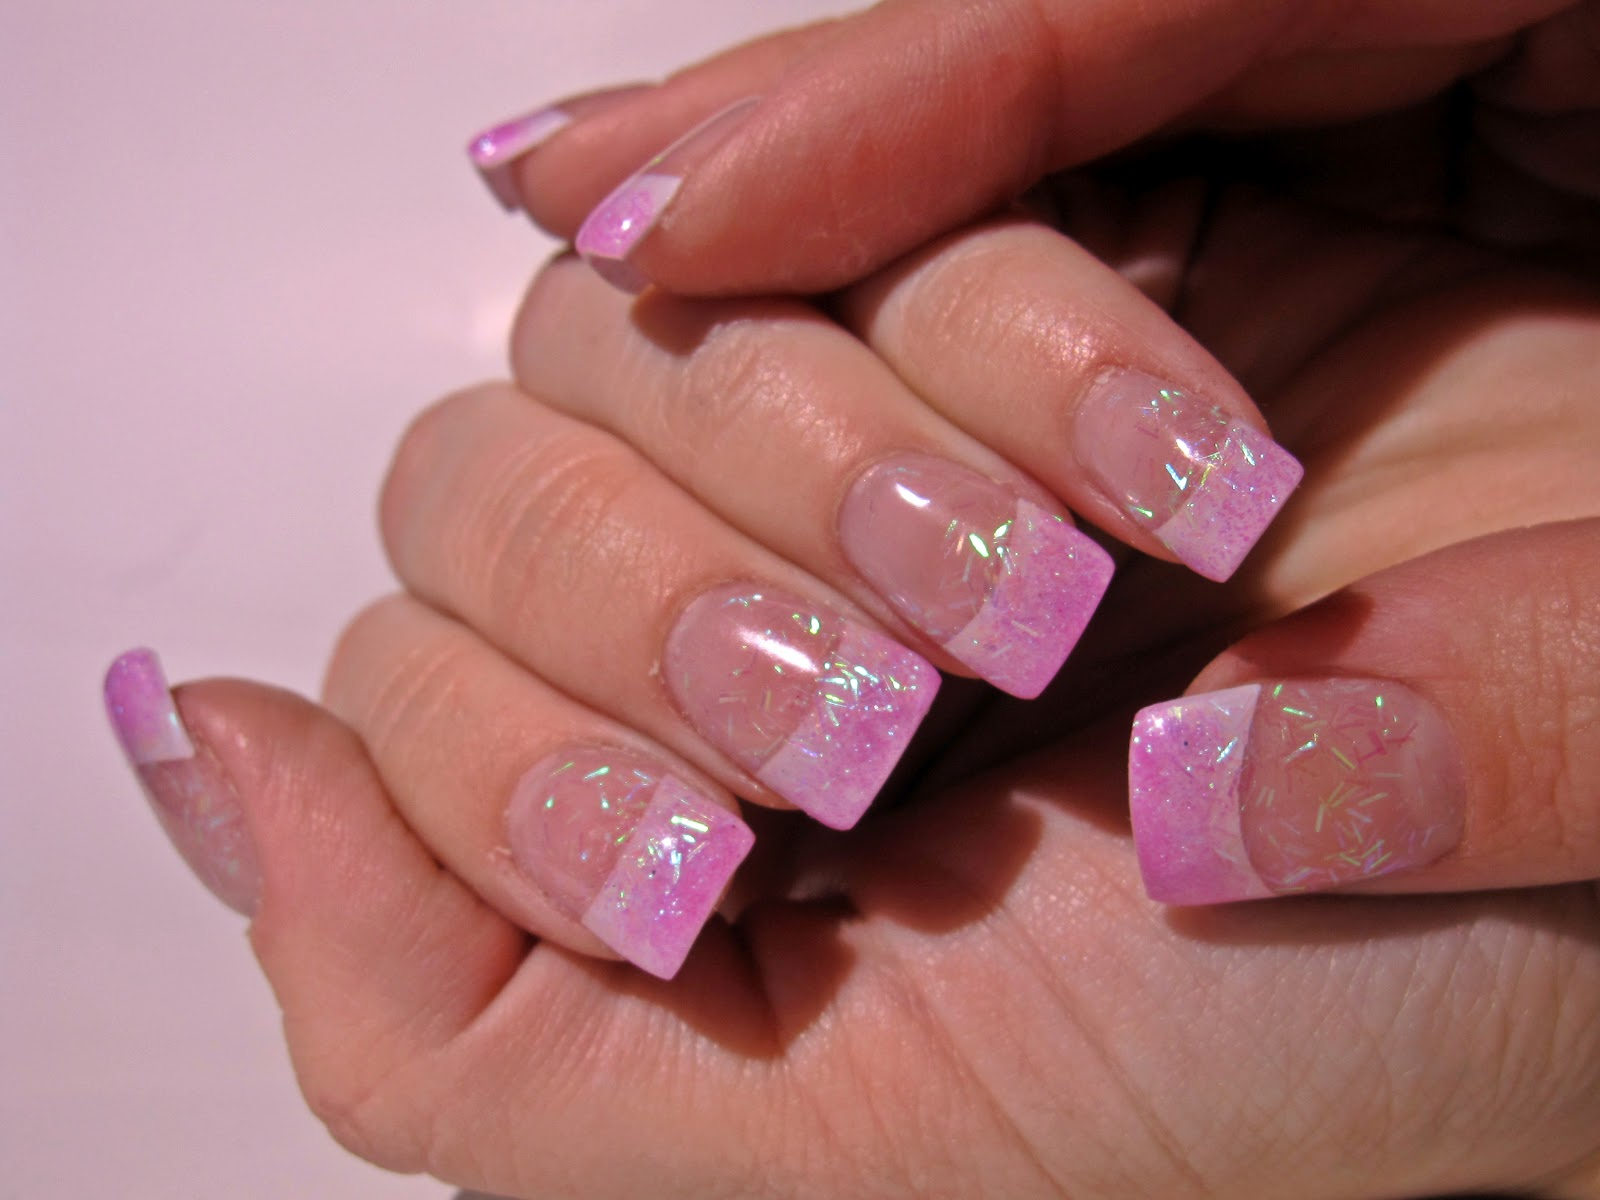 Princess nails never a naked nail this was the very first set of acrylic nails that i ever did on myself when i showed the girls at school they said they looked like princess nails solutioingenieria Choice Image